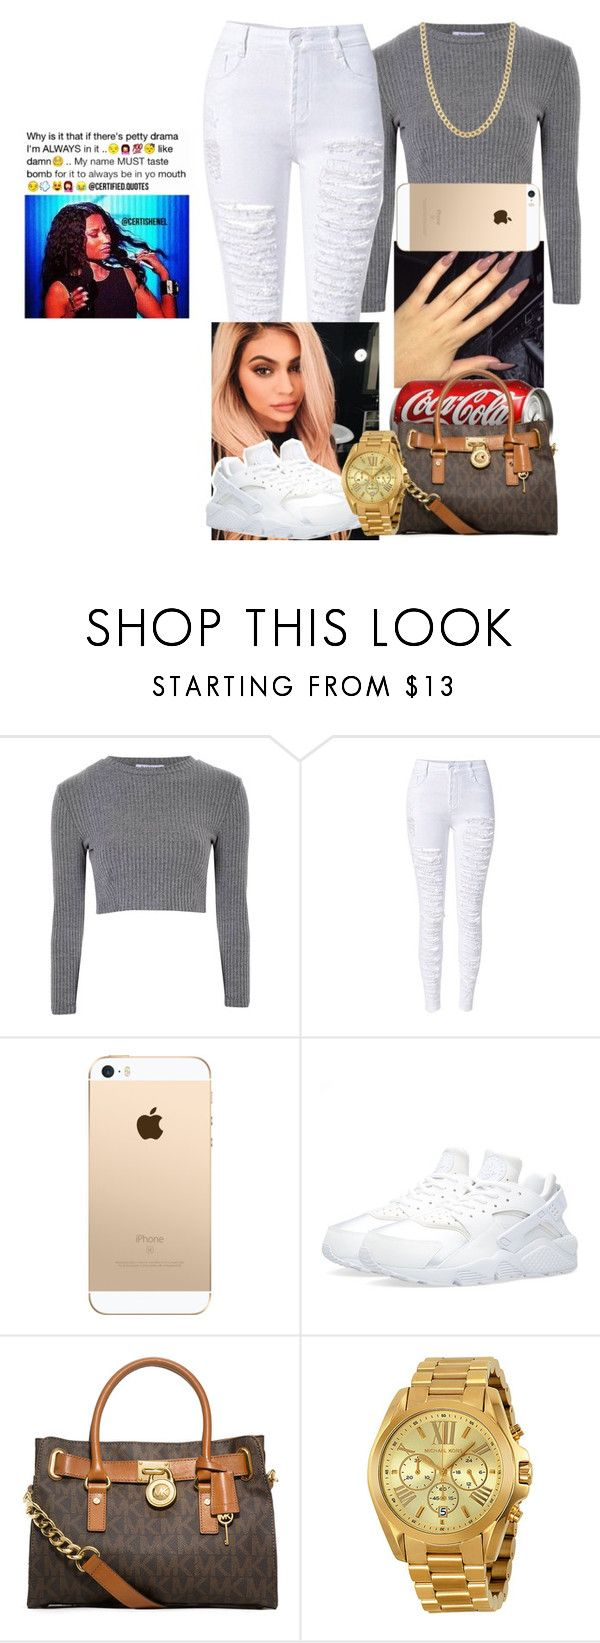 """#ONFLEEK"" by fashionismypashion476589 ❤ liked on Polyvore featuring Glamorous, Justin Bieber, NIKE, MICHAEL Michael Kors, Michael Kors and Fremada"